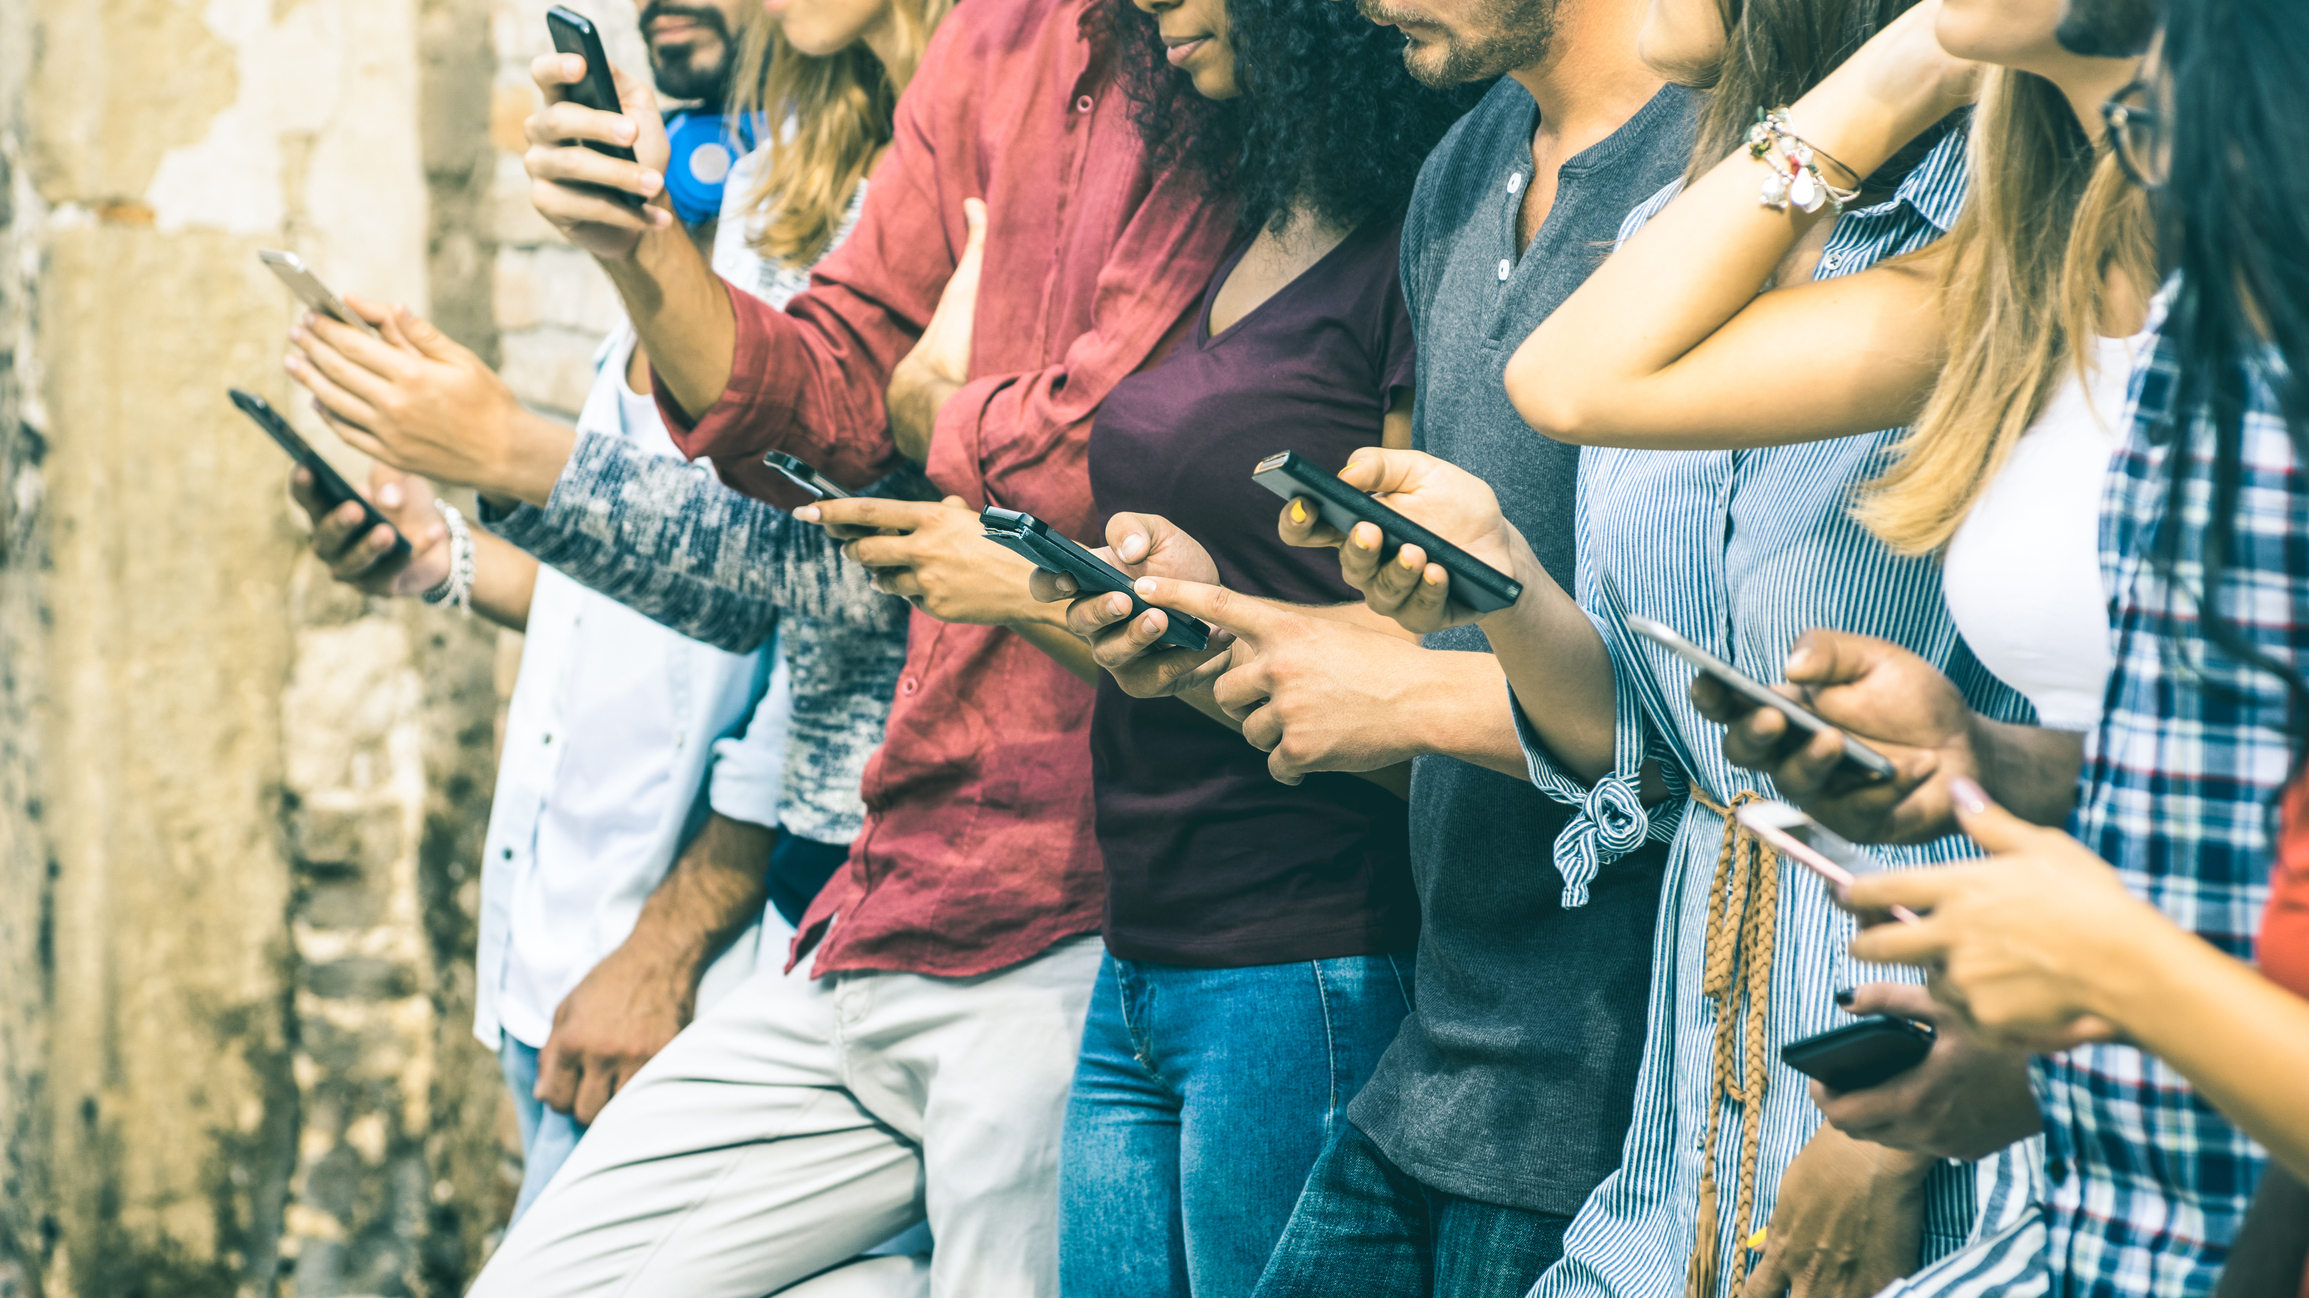 Stock photo of a row of people all on their smart phones